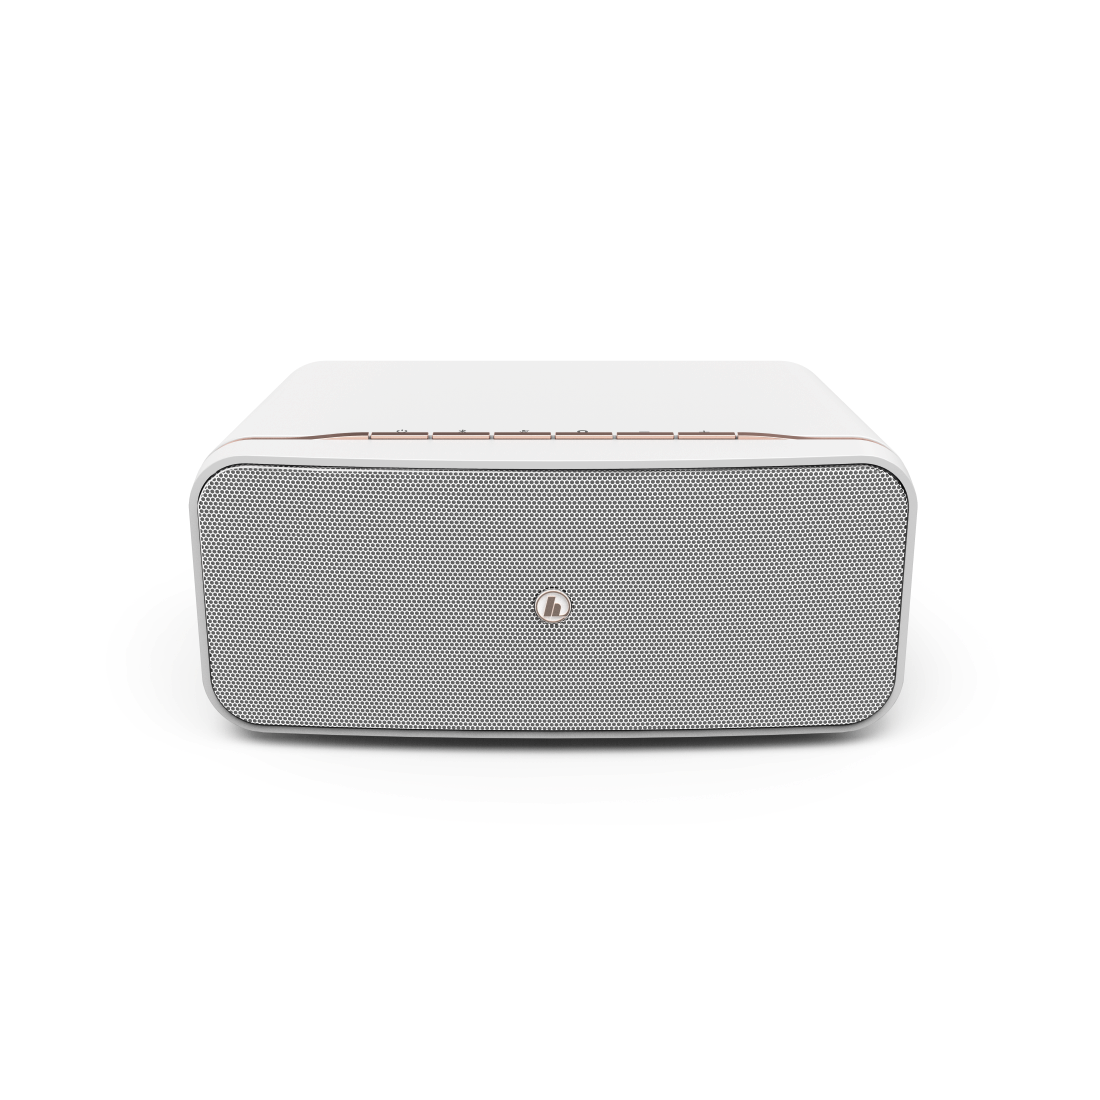 "abx High-Res Image - Hama, Smart-speaker ""SIRIUM1000ABT"", Alexa/Bluetooth®, wit"